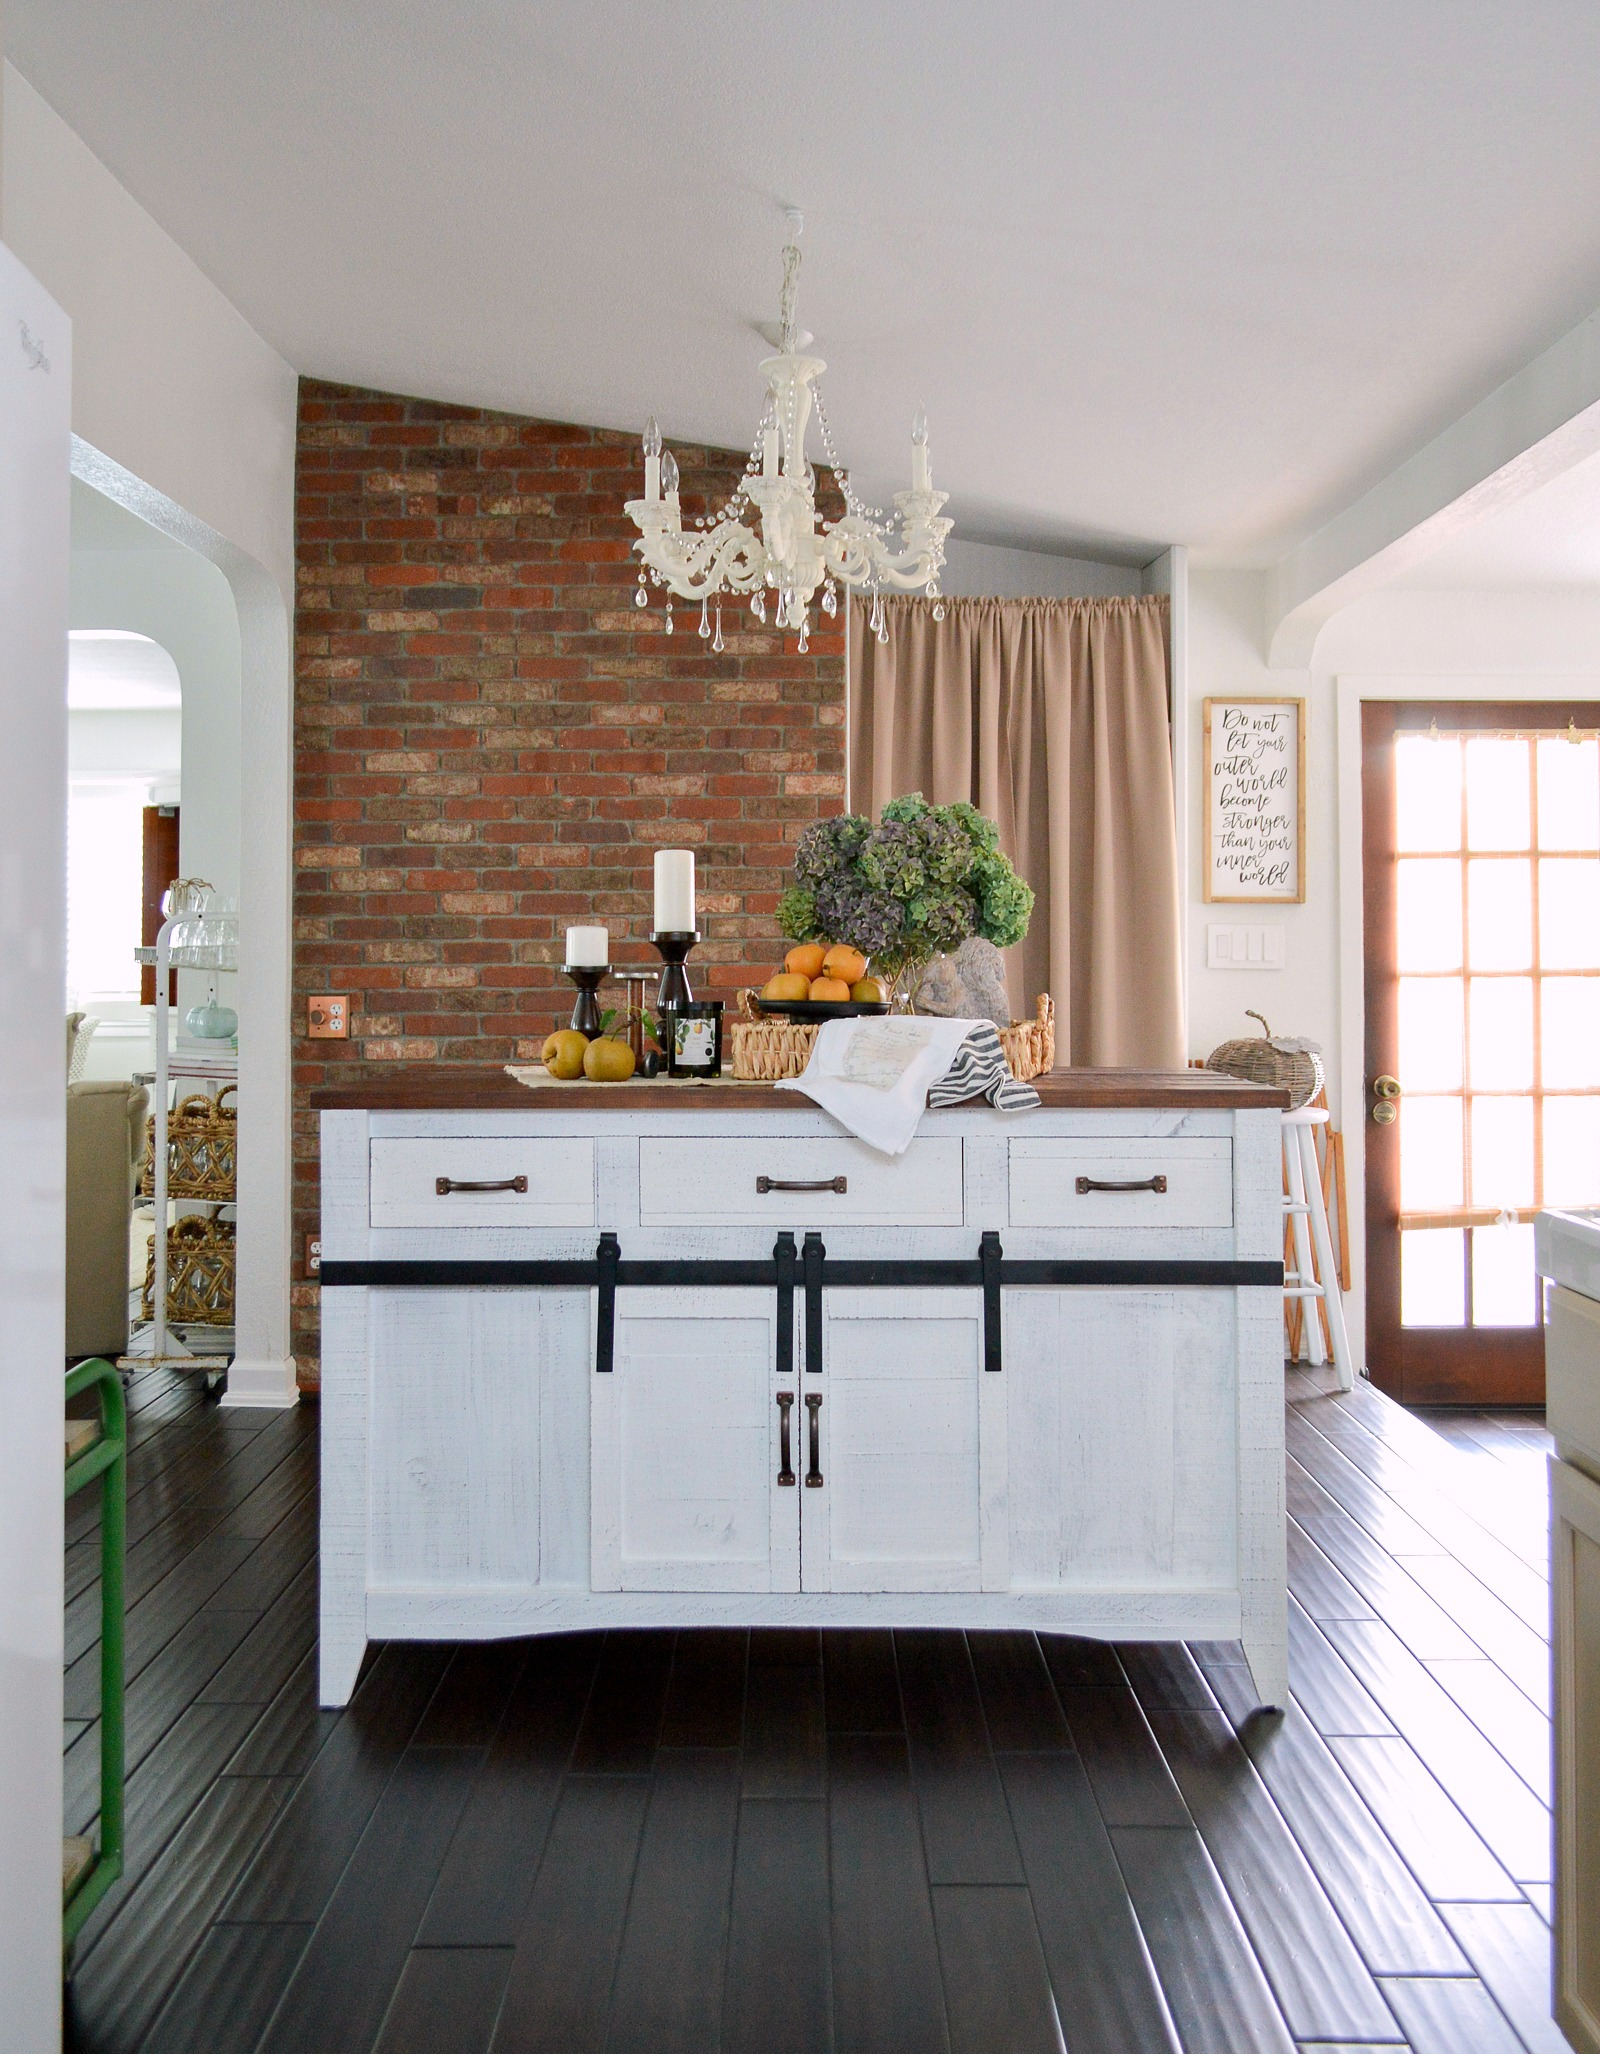 Brick Wall And Farmhouse Kitchen Island Reveal Makeover Part 1